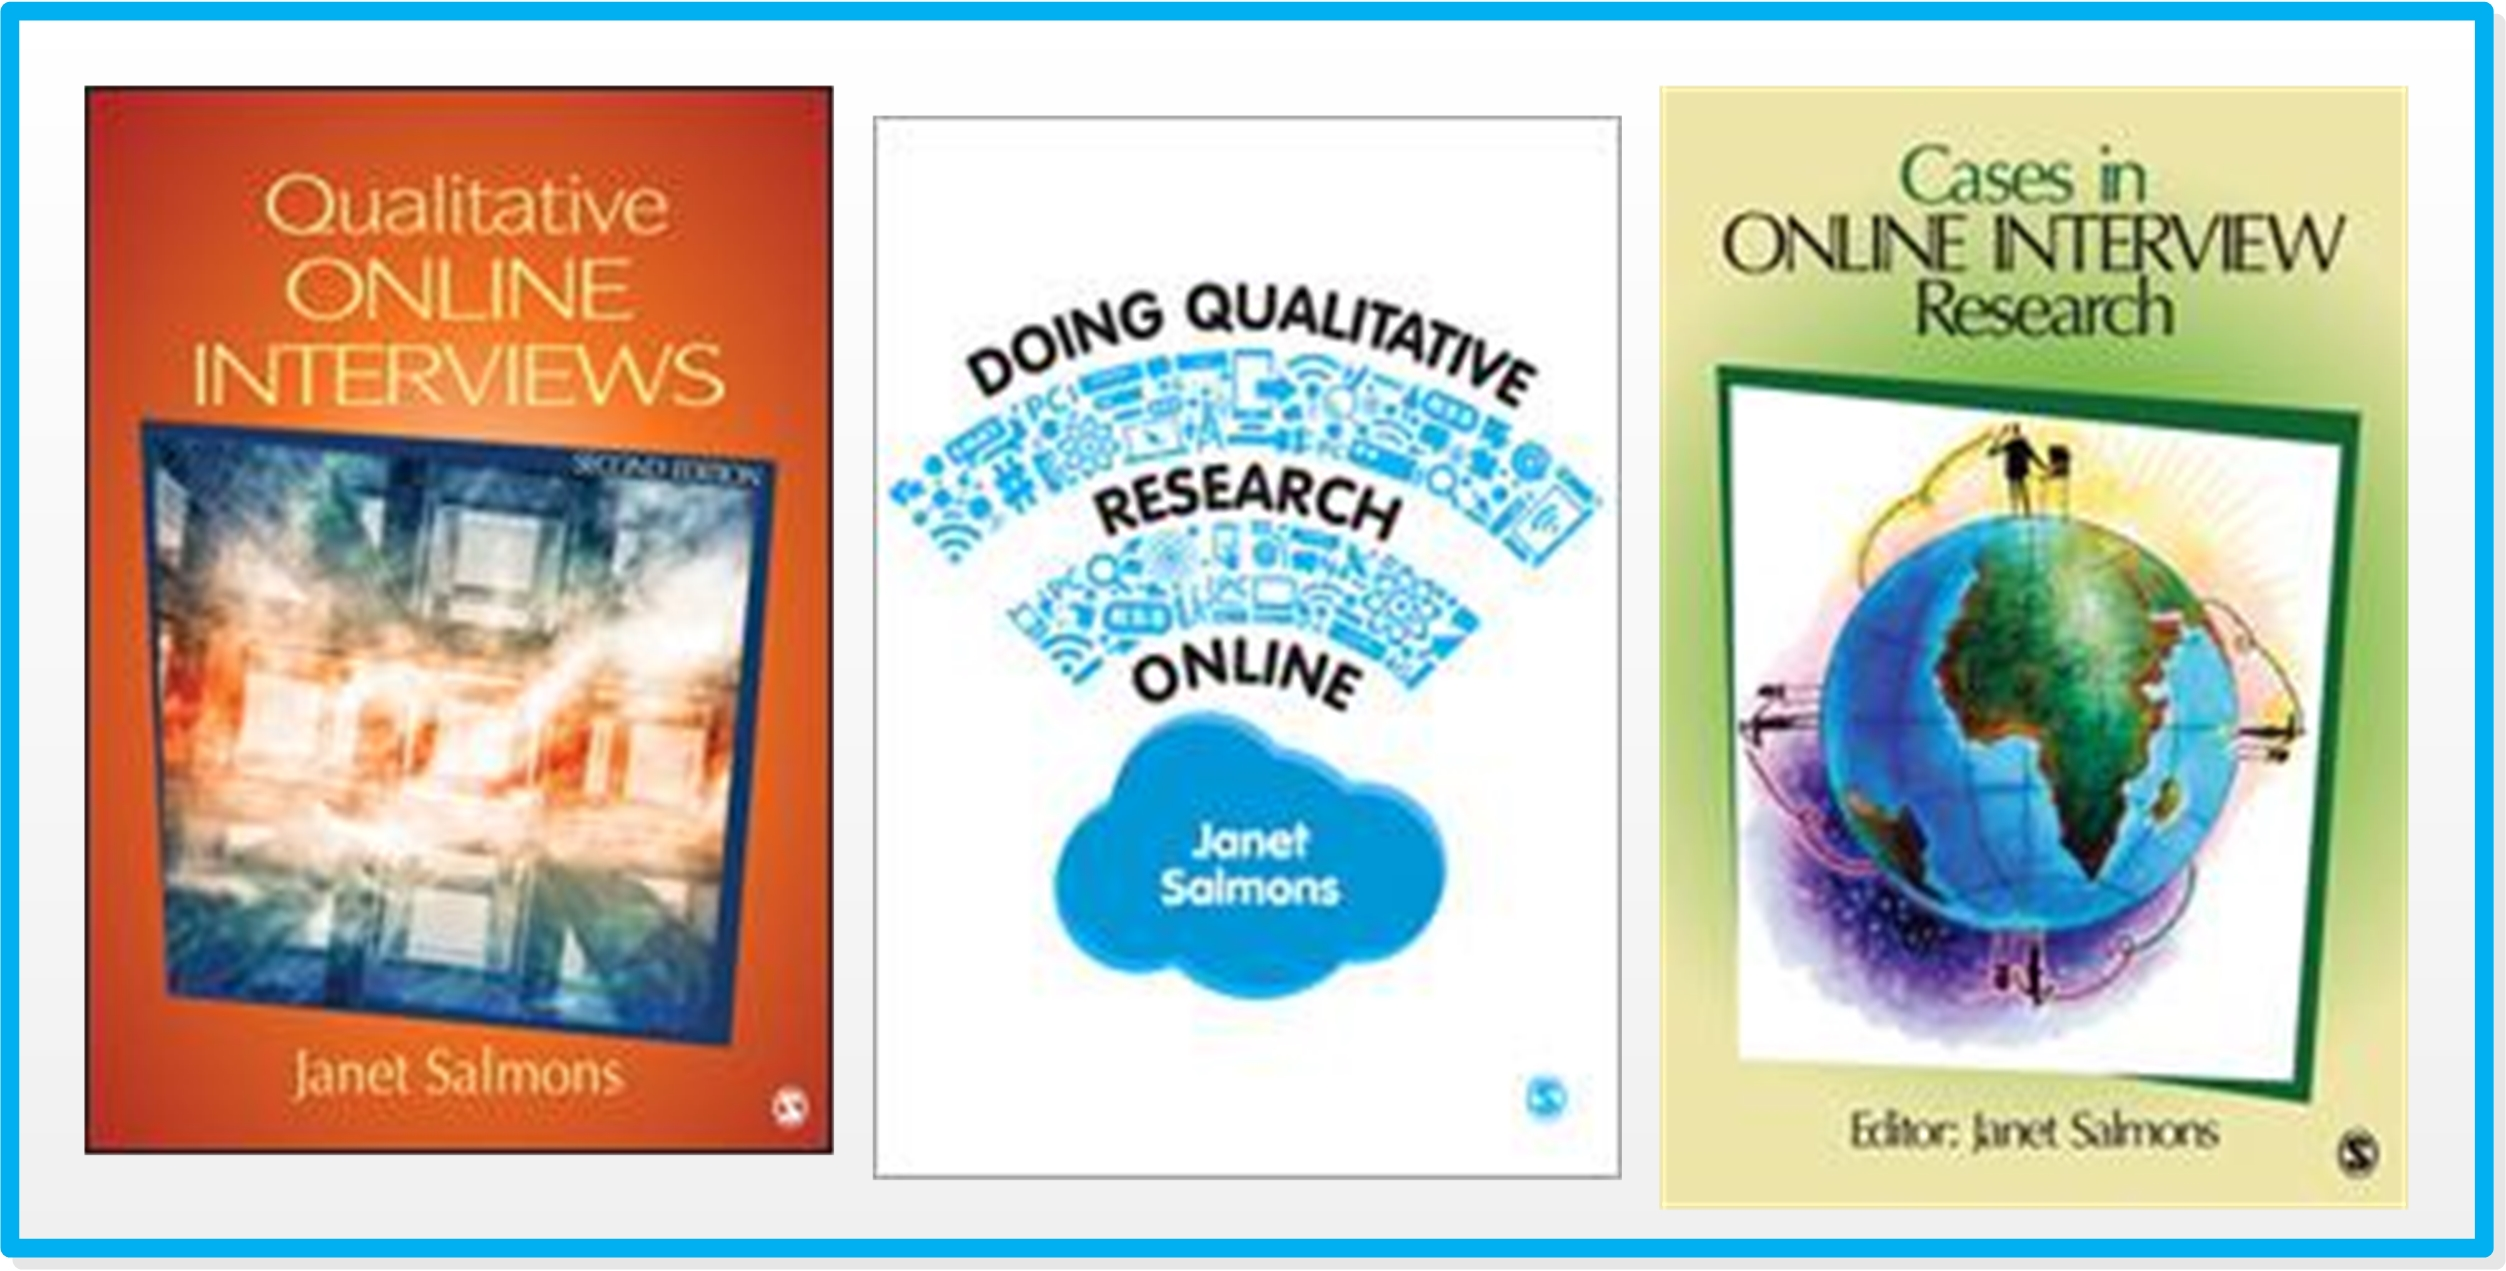 Learn to conduct research online with these books from SAGE Publications!